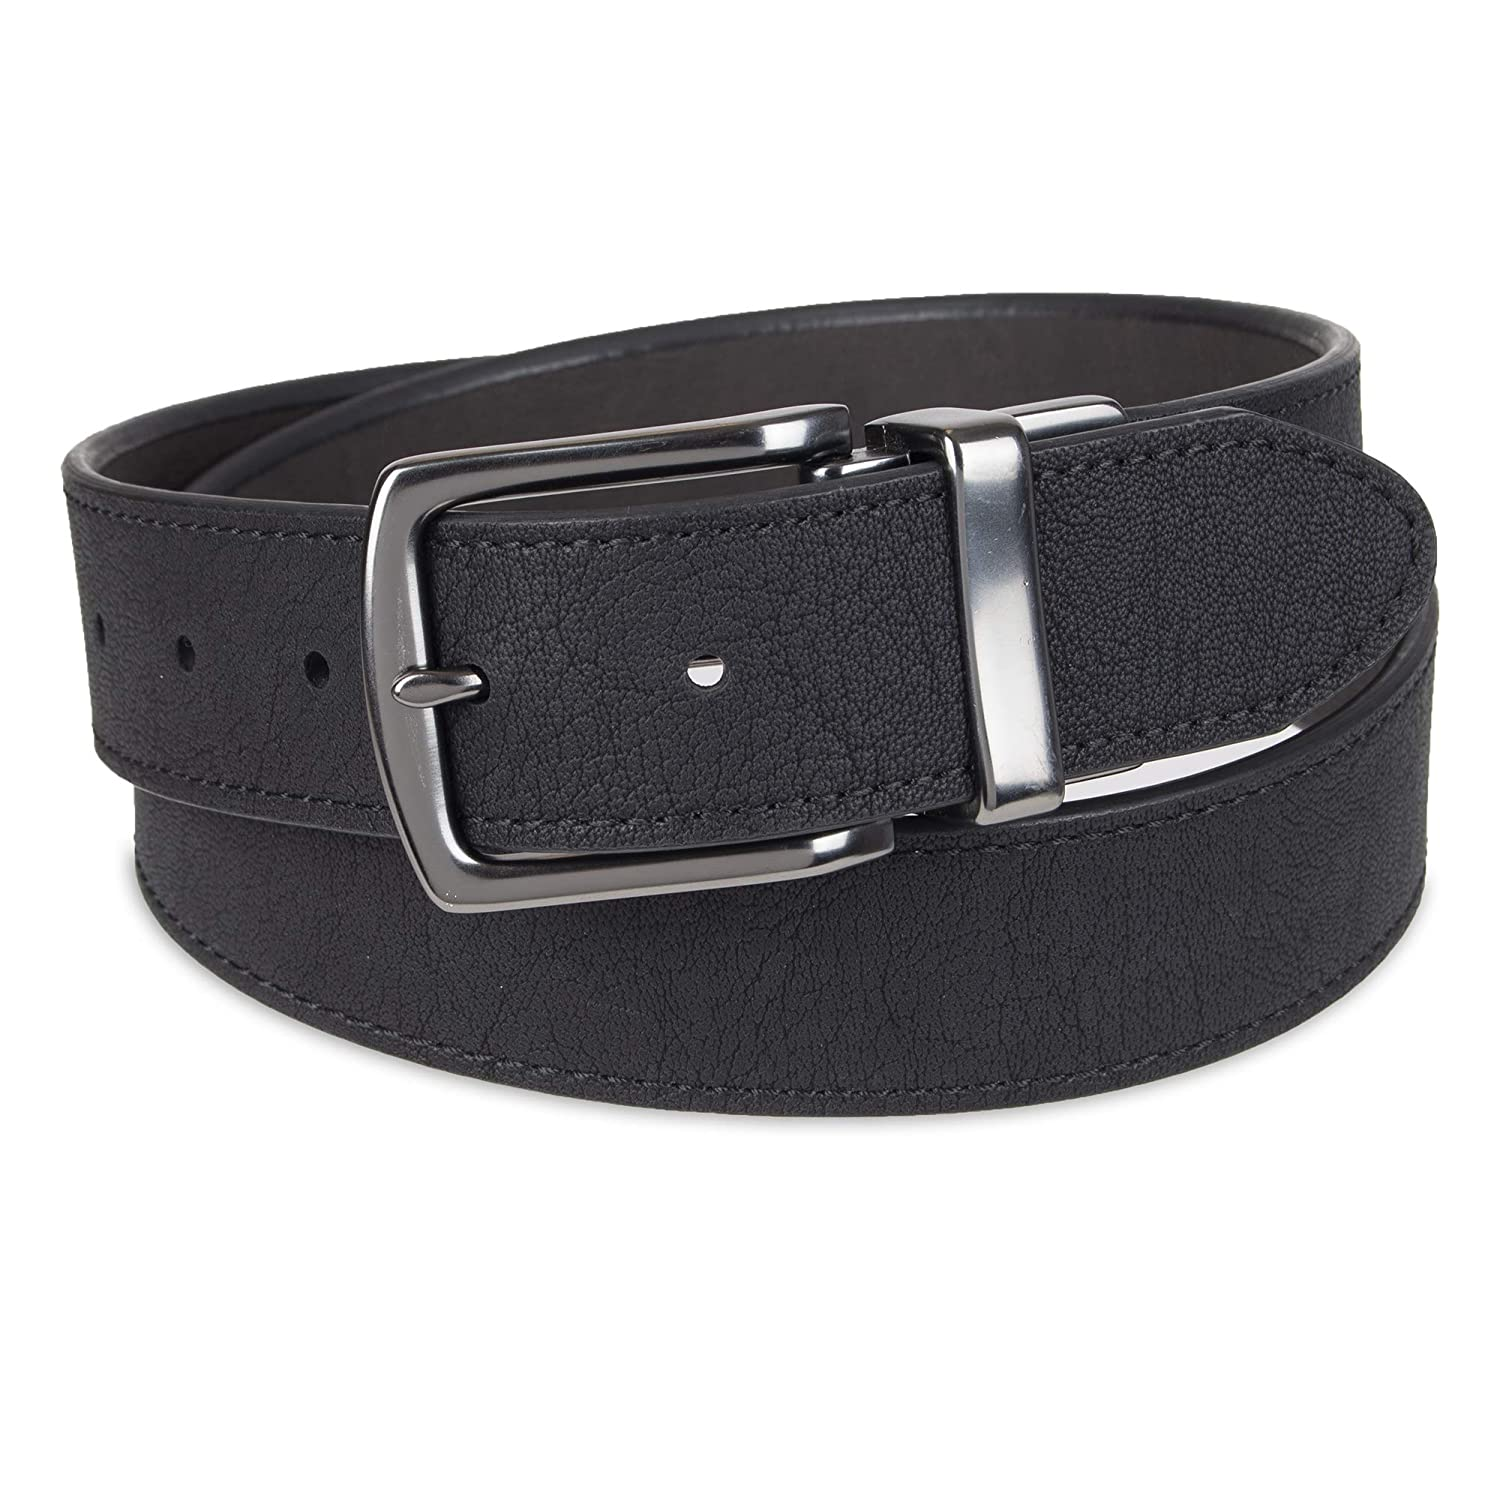 Columbia Reversible Leather Belt Casual for Mens Jeans with Double Sided Strap